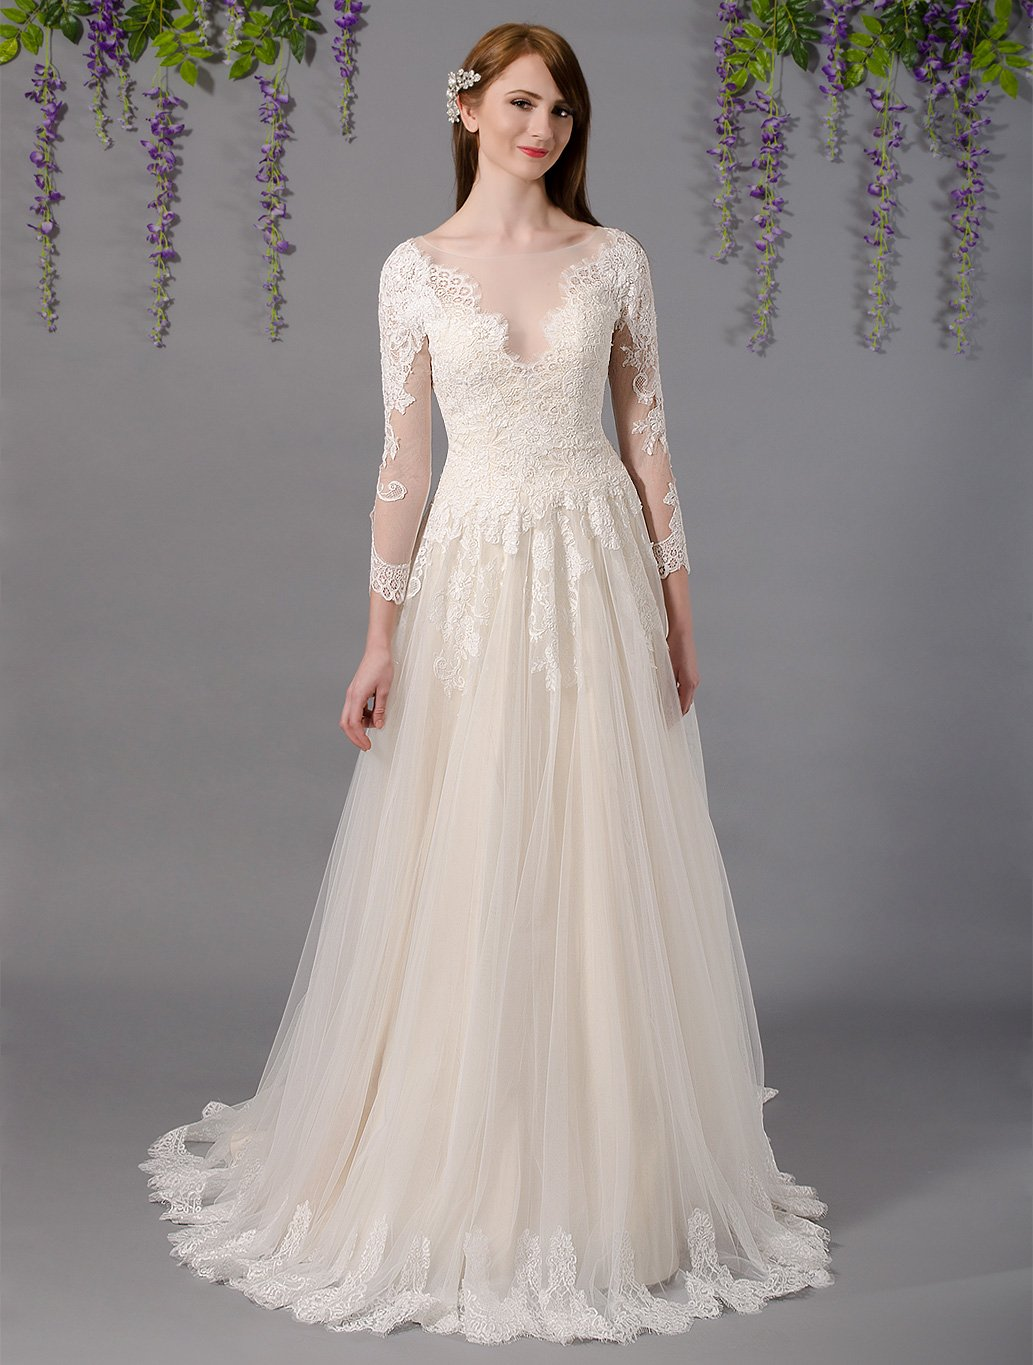 Long sleeve lace wedding dress with alencon lace 4031